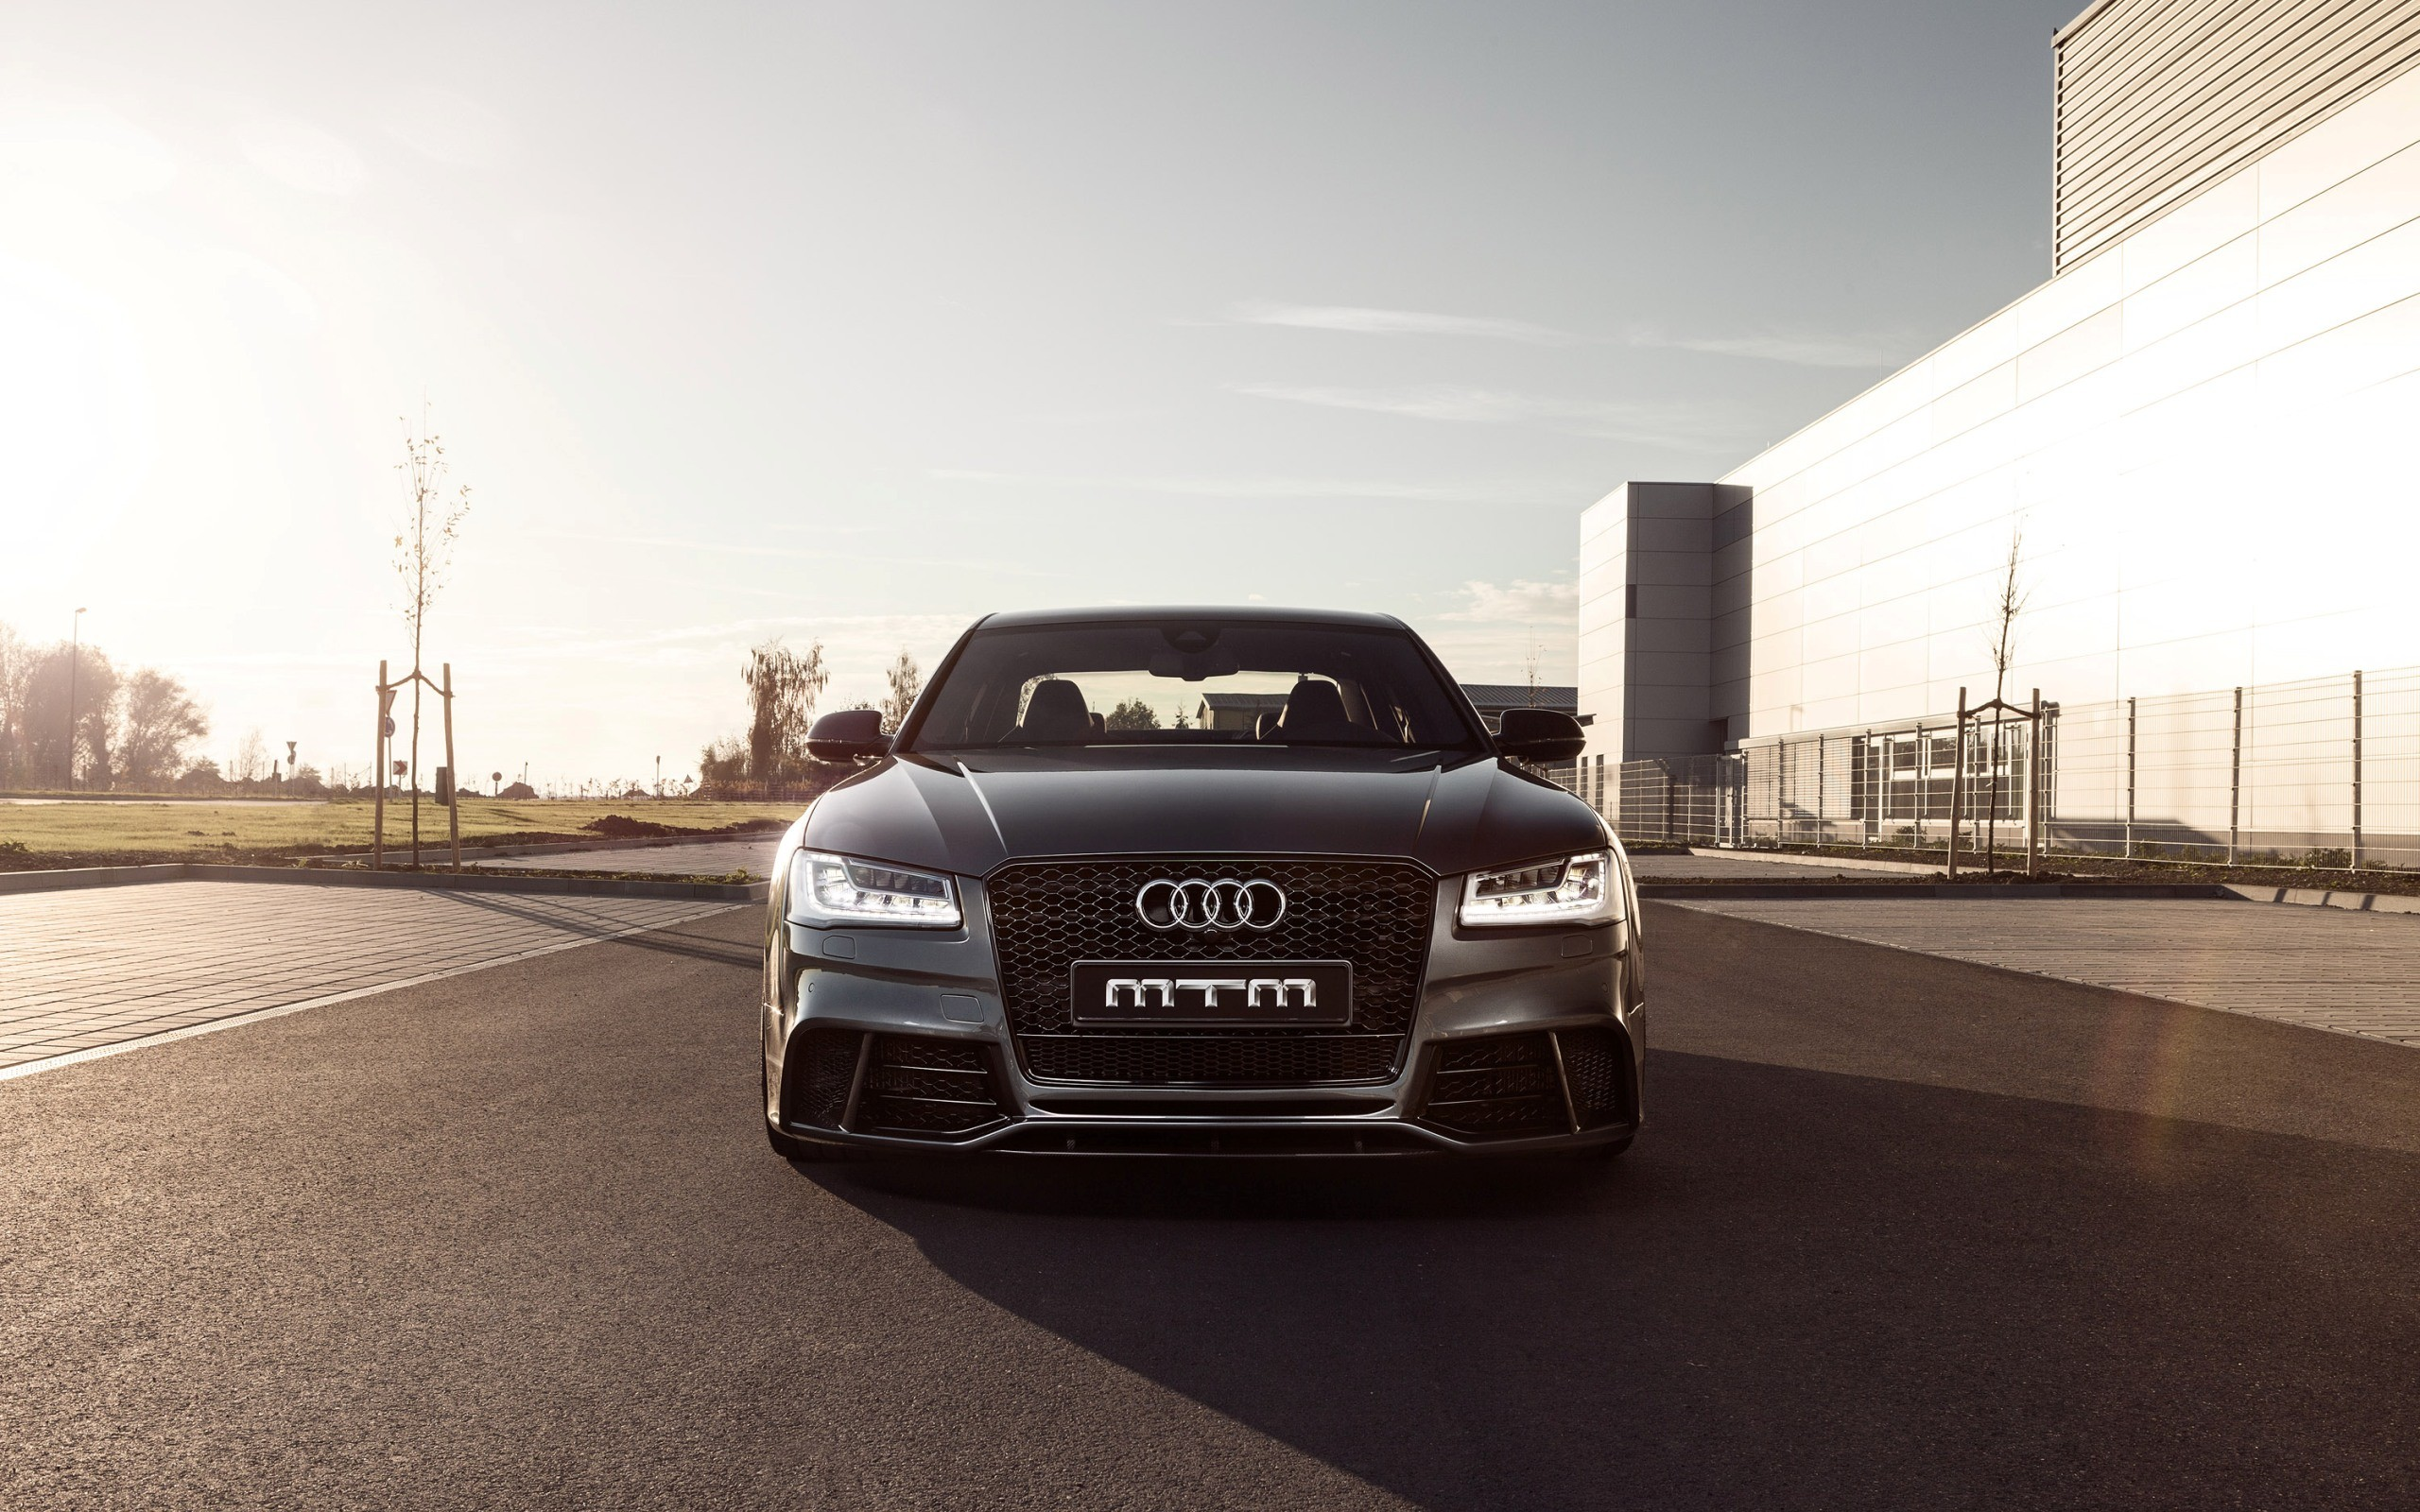 Audi S8 Wallpapers High Resolution HU8JRHP   4USkY 2560x1600